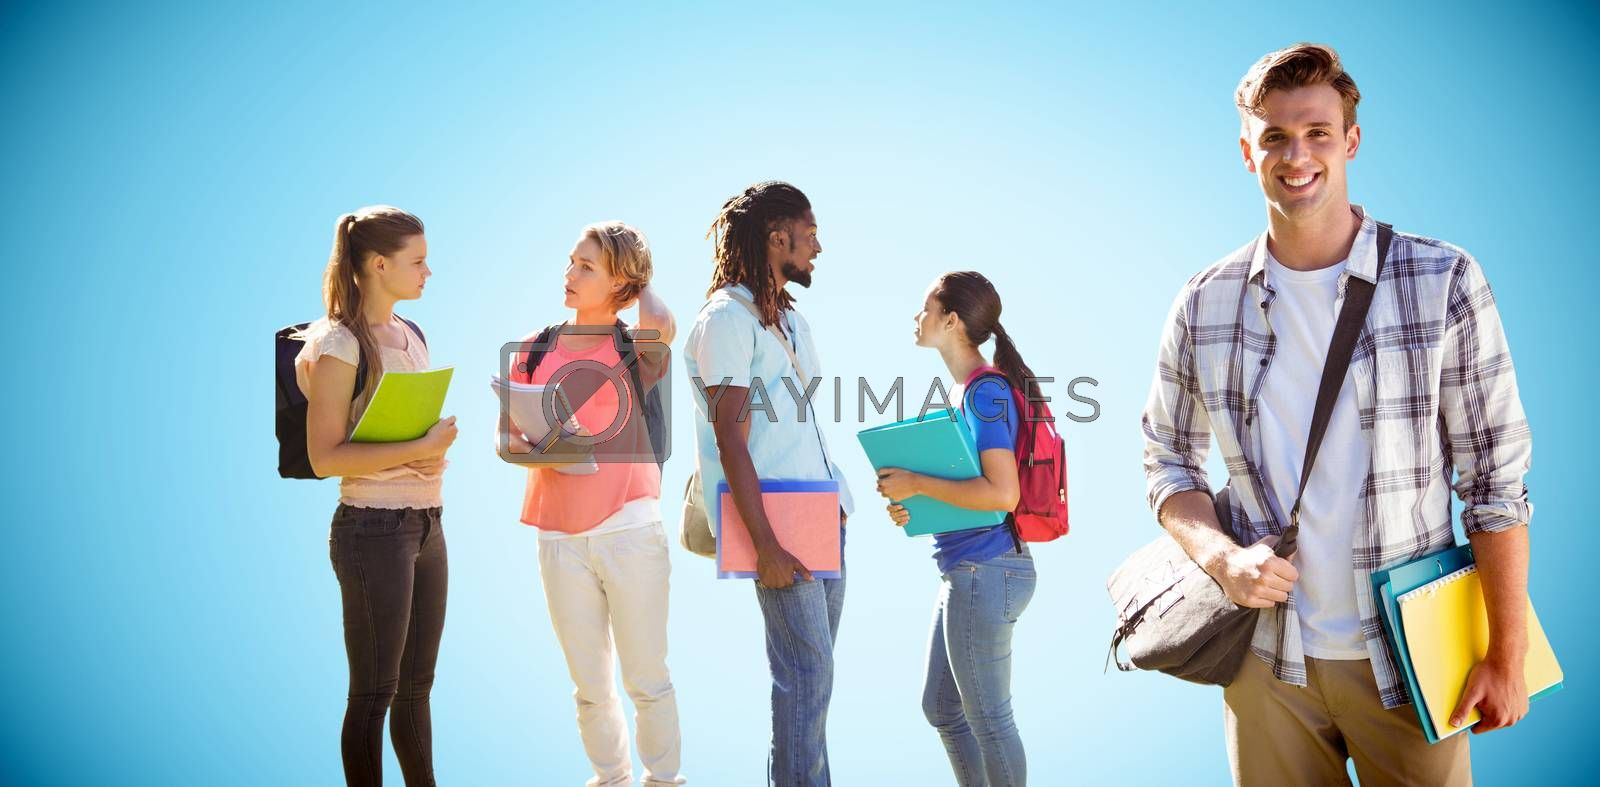 Happy students outside on campus  against blue background with vignette